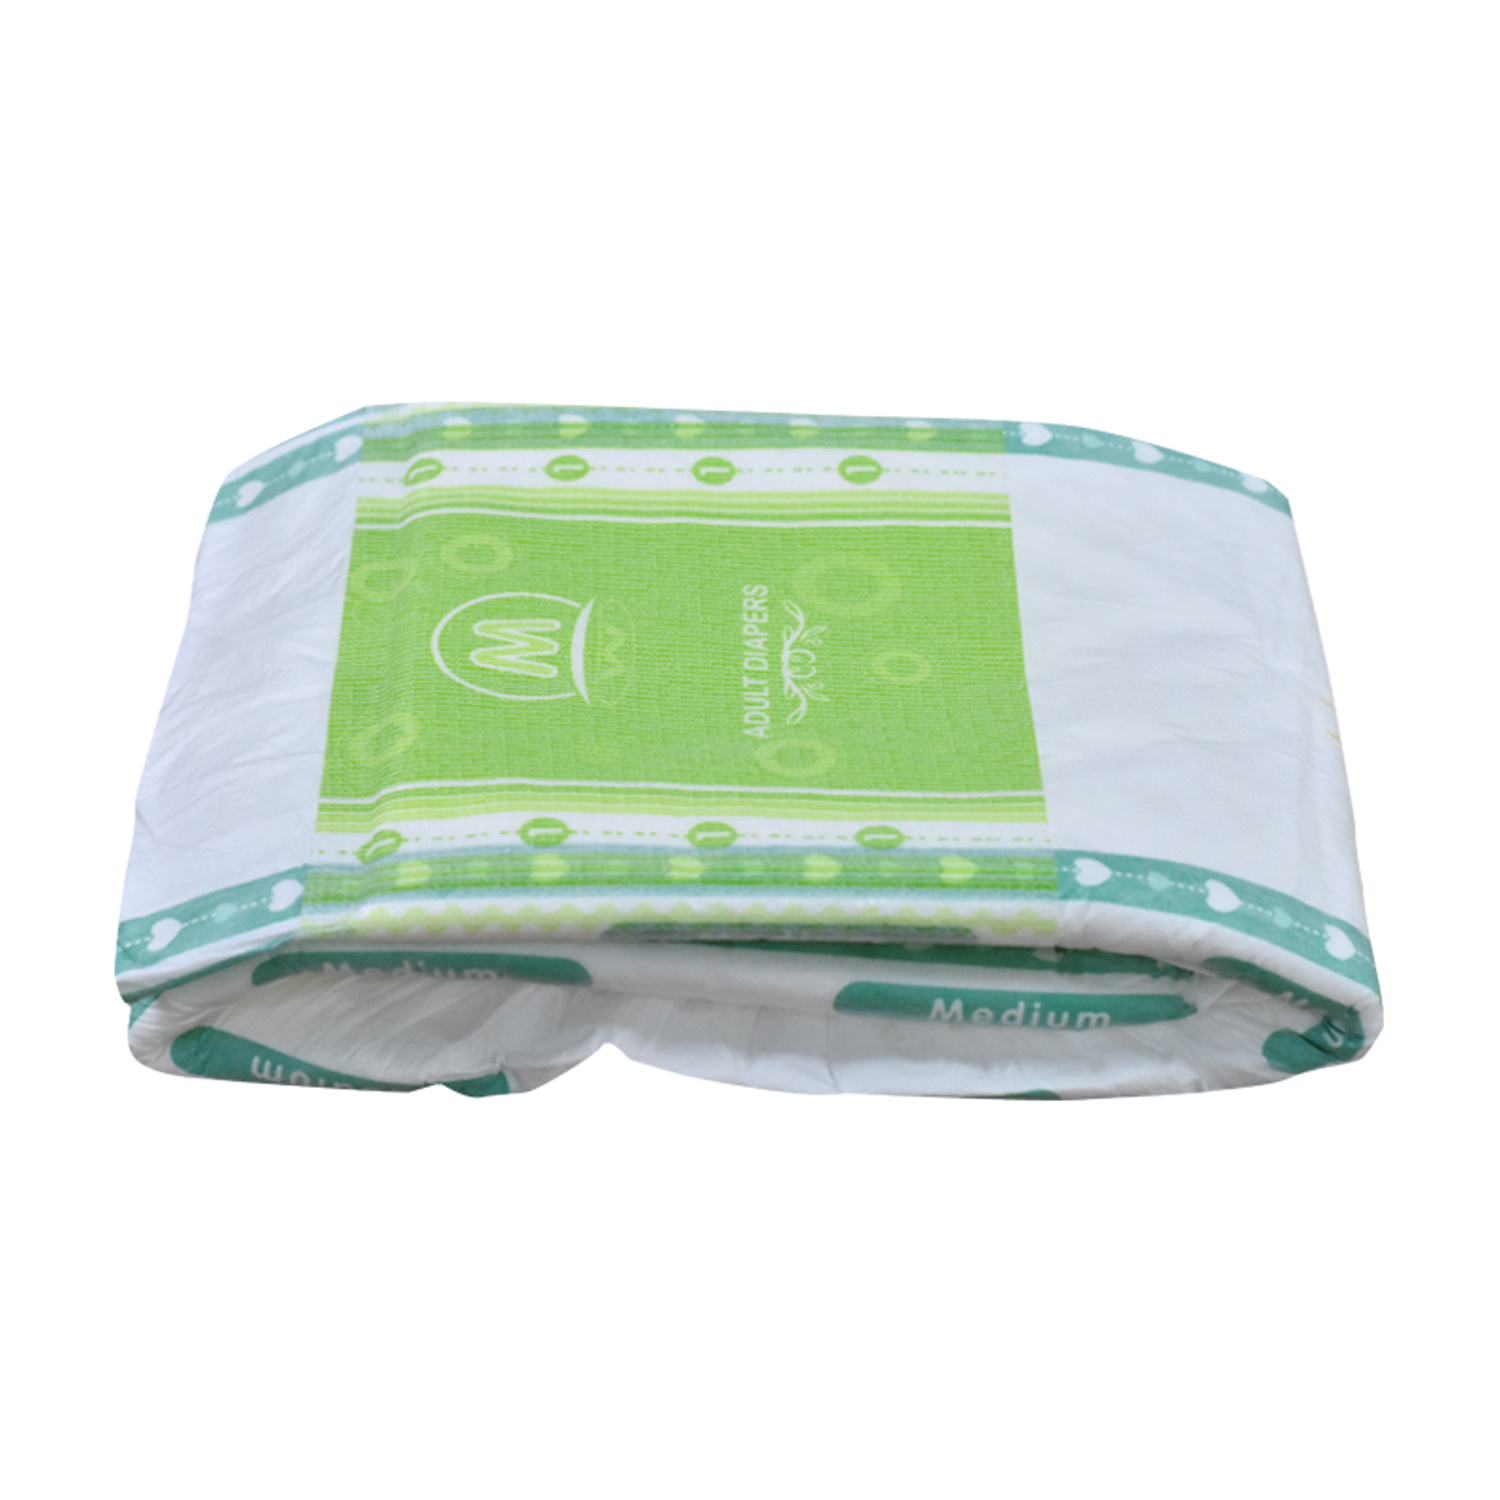 Disposable OEM Cloth-Like Back Sheet Incontinence Adult Diapers Overnight